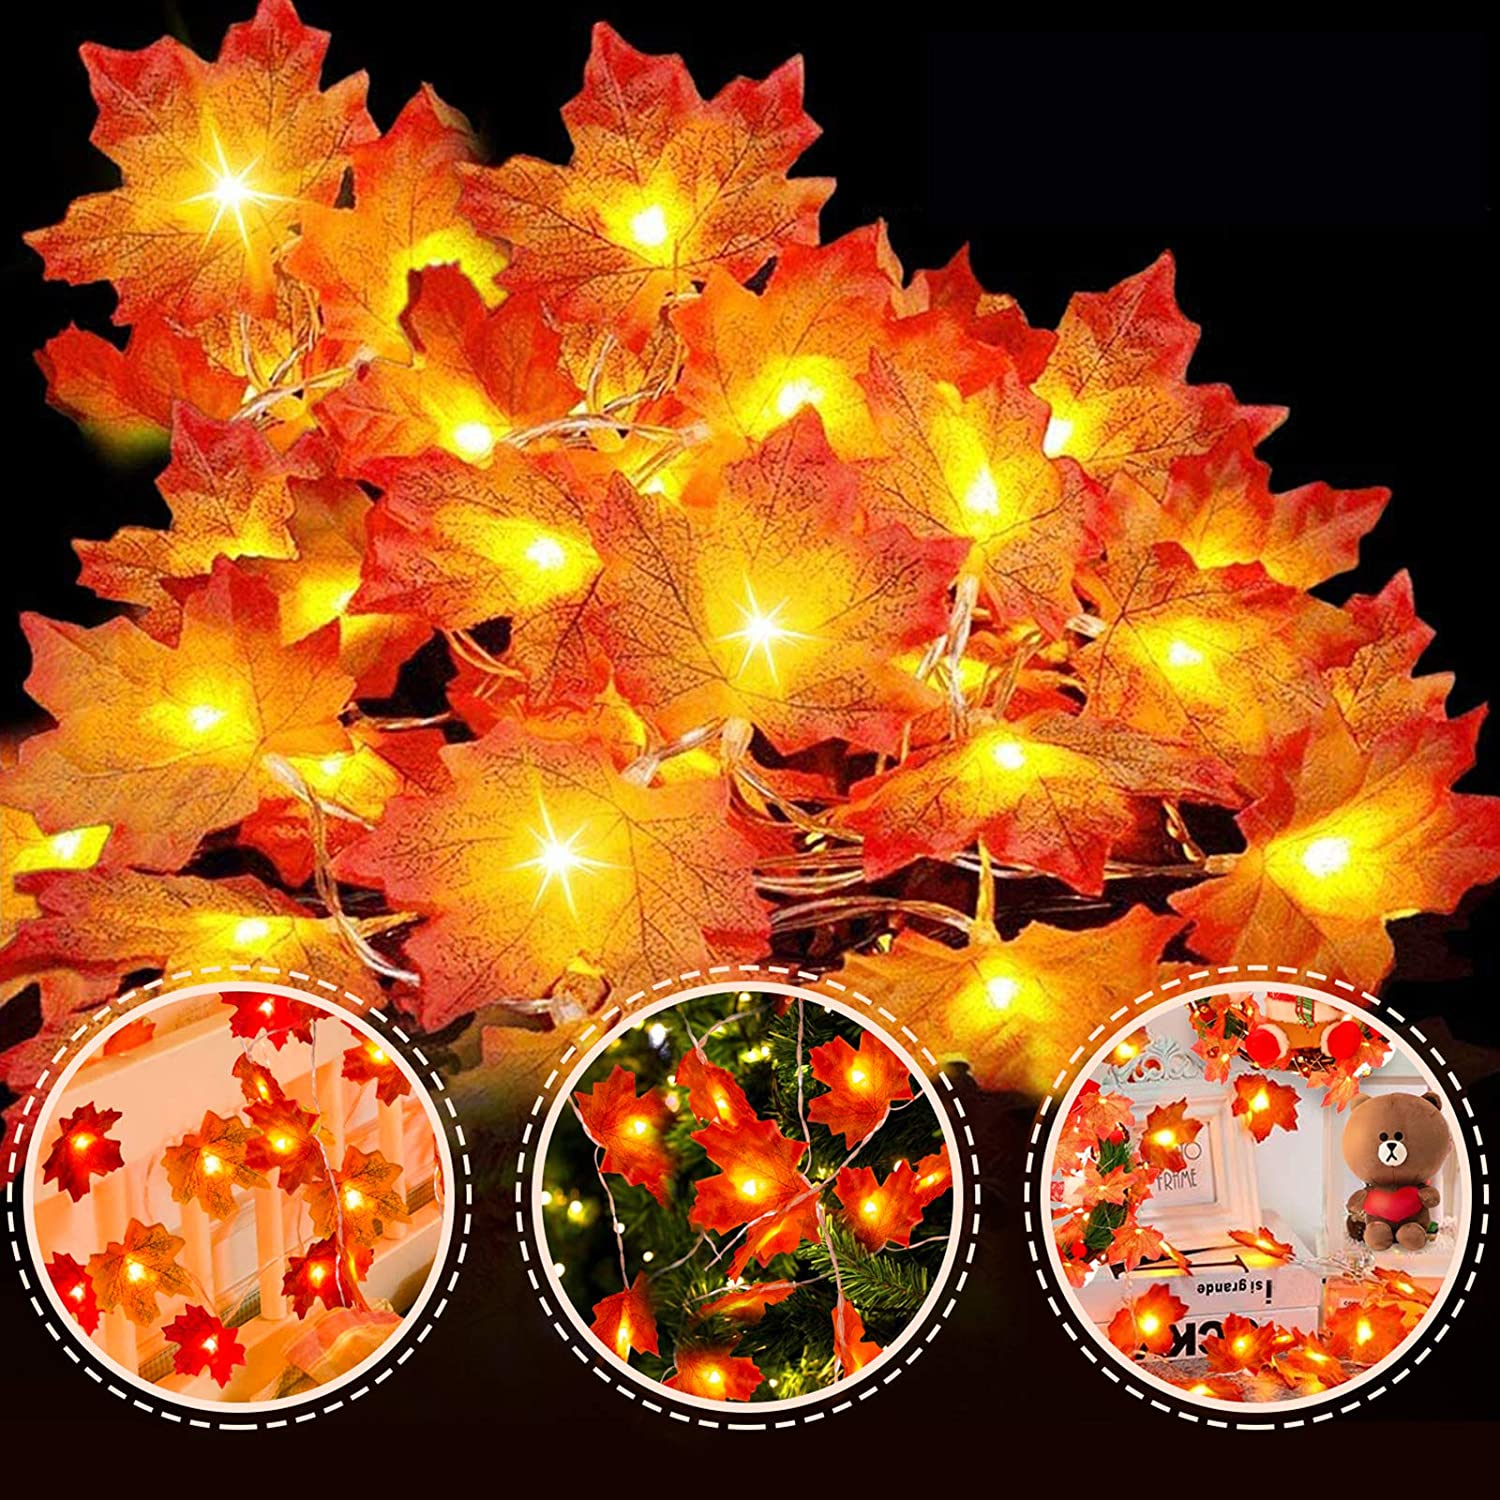 VIBOLA Maple LED String Lights, 20 Counts 10 FT Fairy String Lights, Battery Operated Decorative Mini Christmas Tree Lights for Halloween Indoor, Outdoor, Bedroom Wall, Garden, Wedding Party, New Year